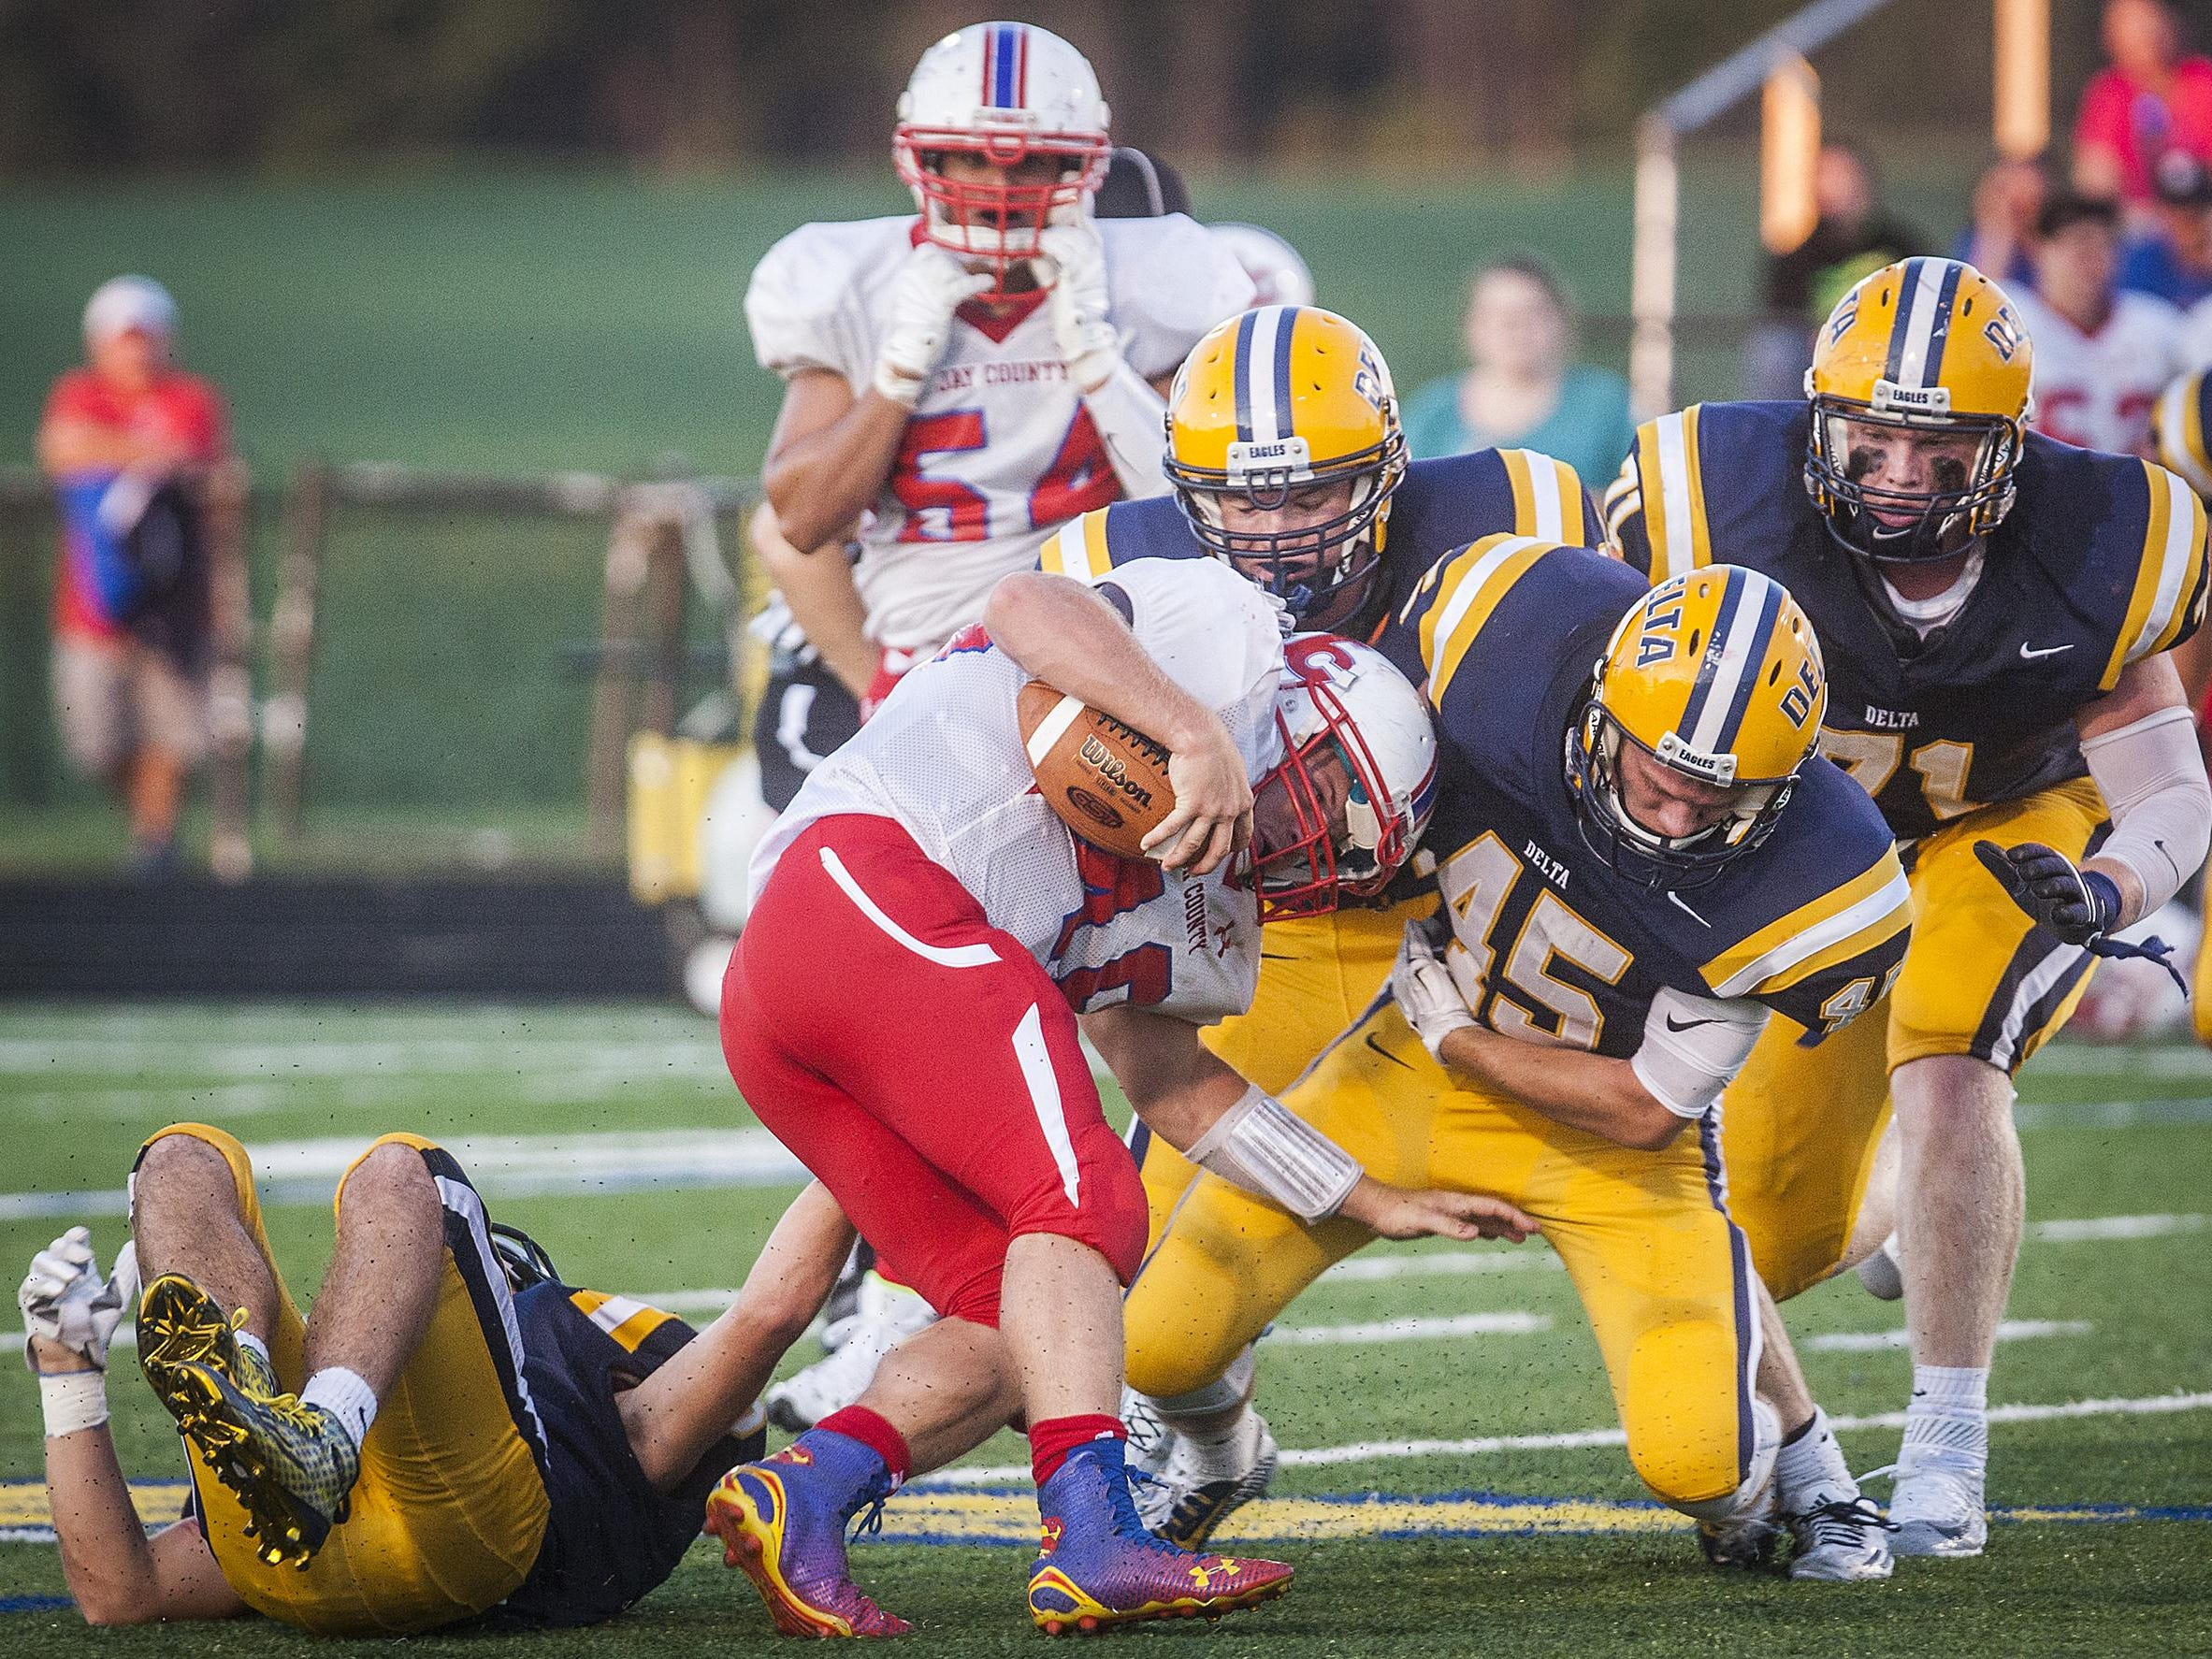 Kaleb Slaven and Kalib White (45) tackle Jay Count's Levi Hummel in the Eagles' Week 1 contest.